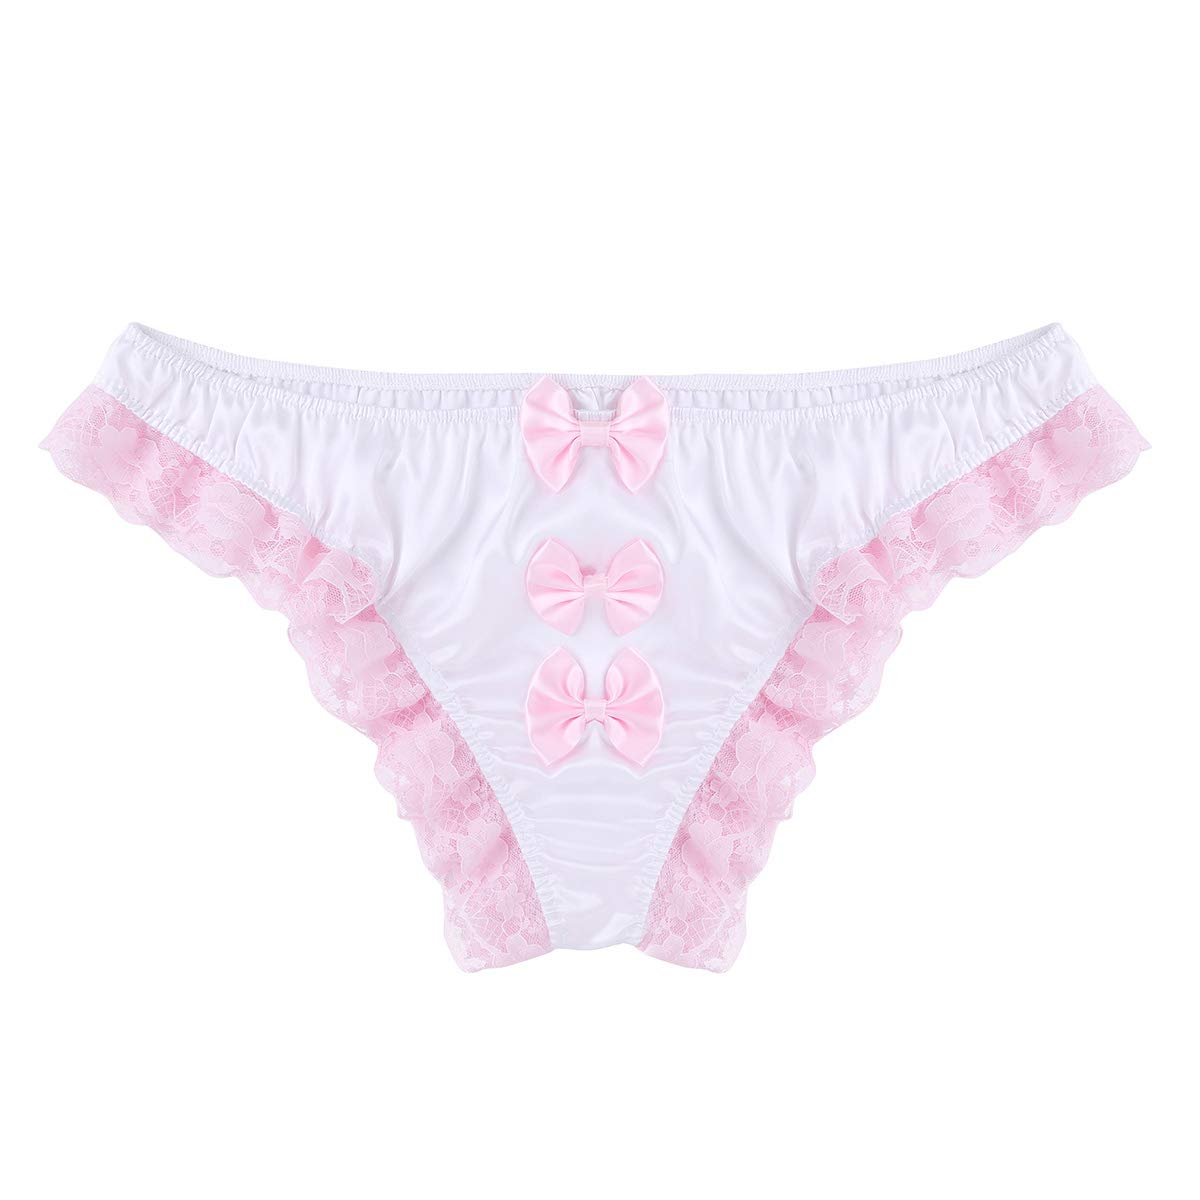 ACSUSS Mens Sissy Floral Lace Back with Big Bowknot Bikini Briefs Thong Underwear